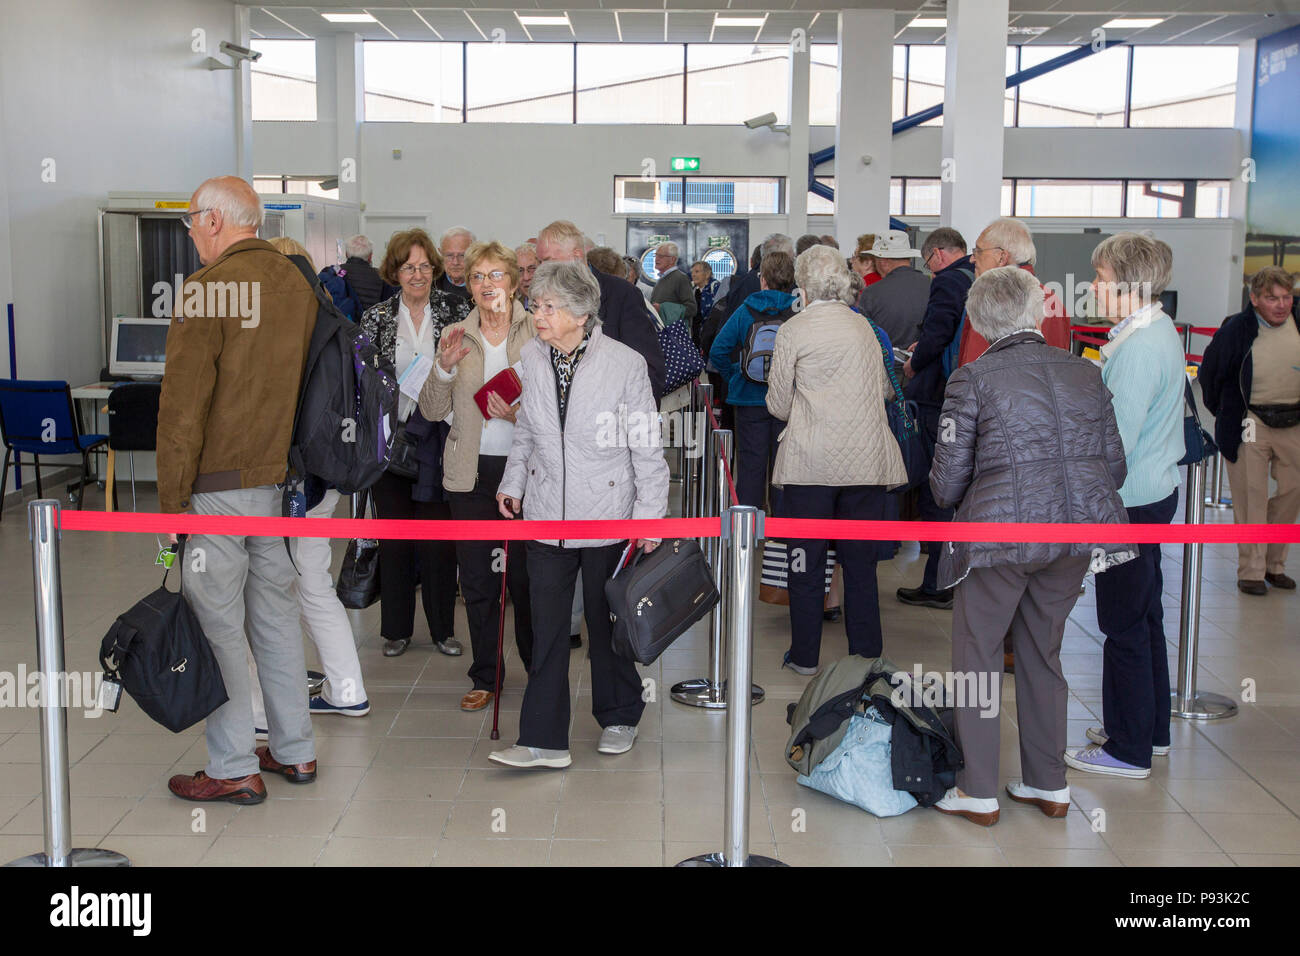 Elderly people queuing for cruise ship - Stock Image